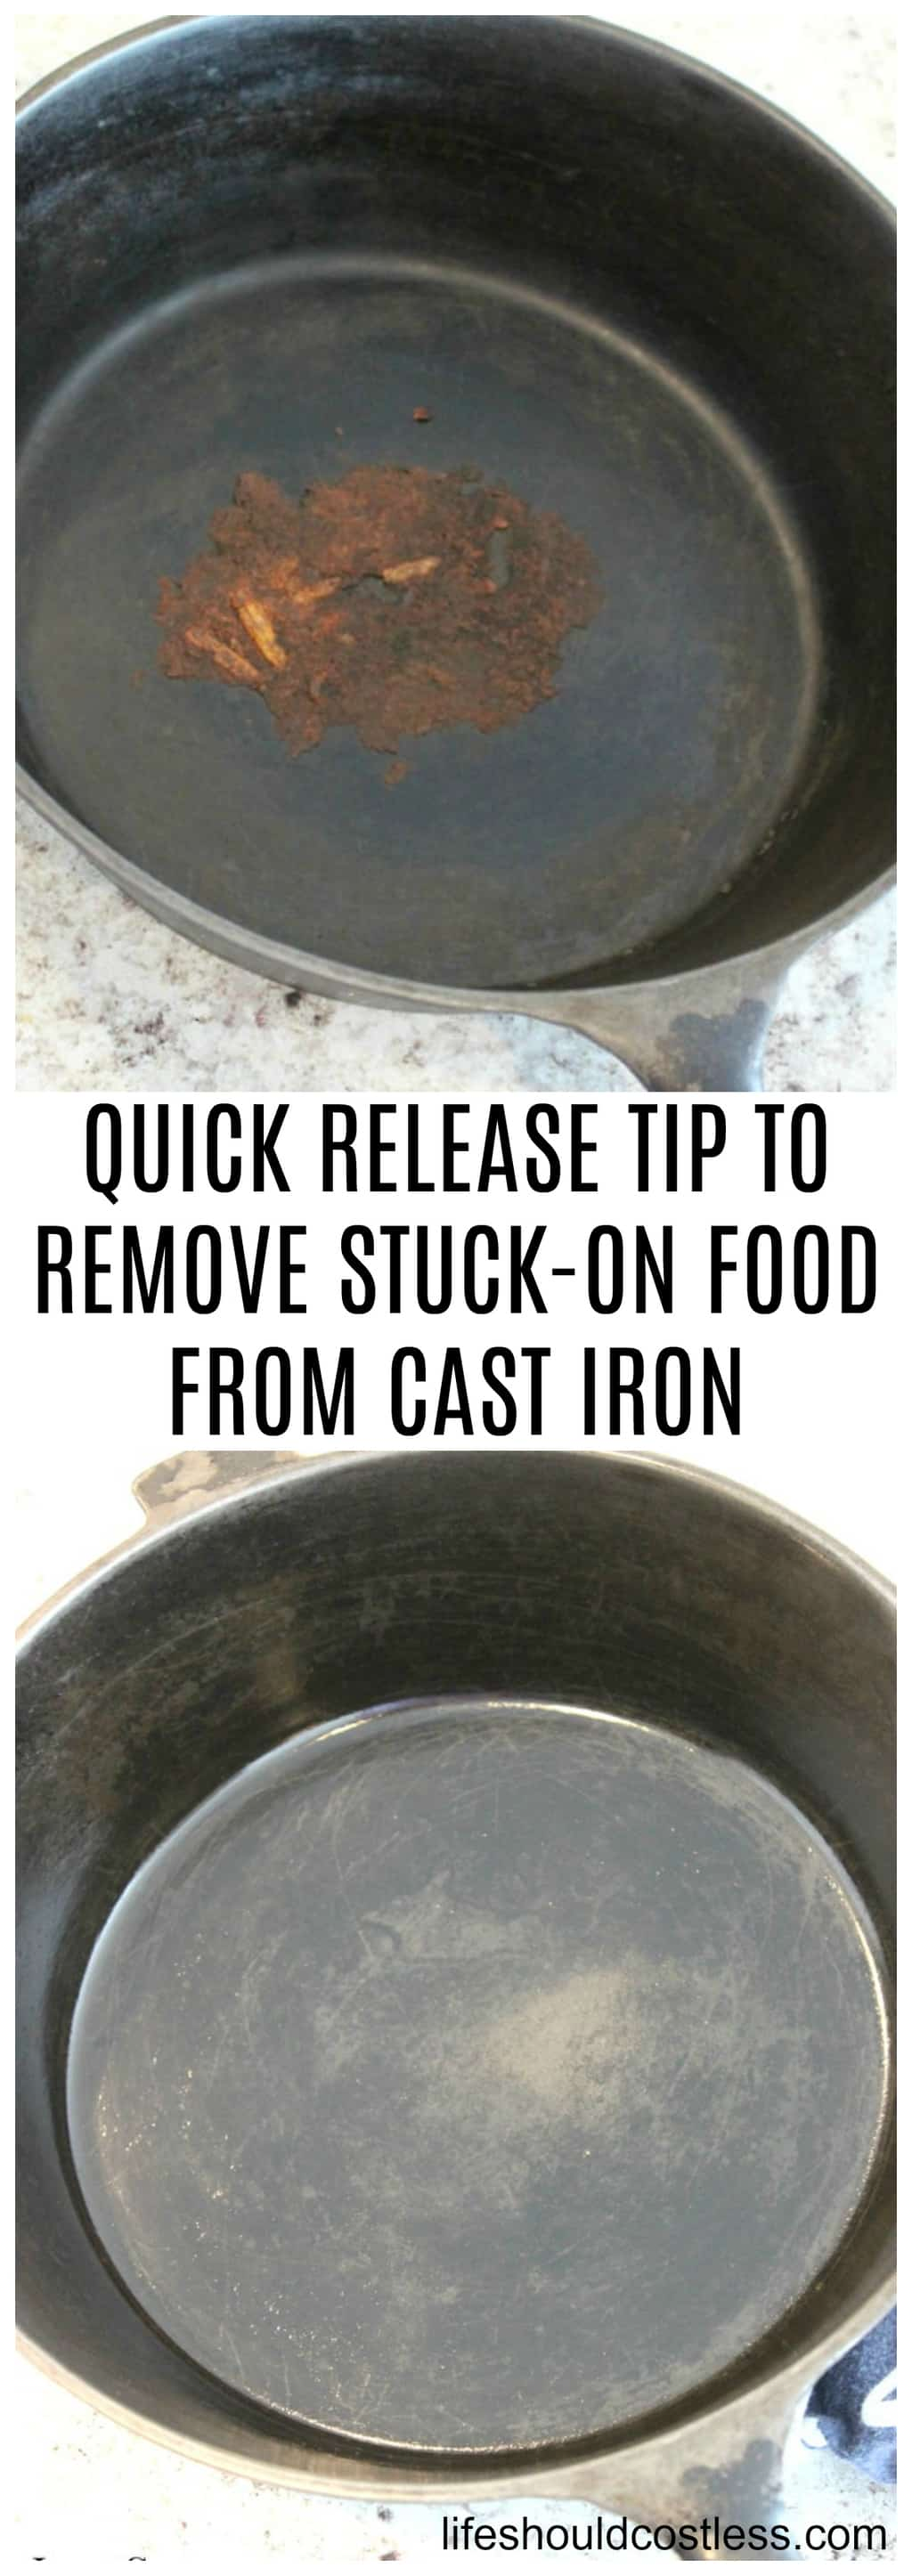 QUICK RELEASE TIP TO REMOVE STUCK-ON FOOD FROM CAST IRON. Easy cast iron care cleaning tip.